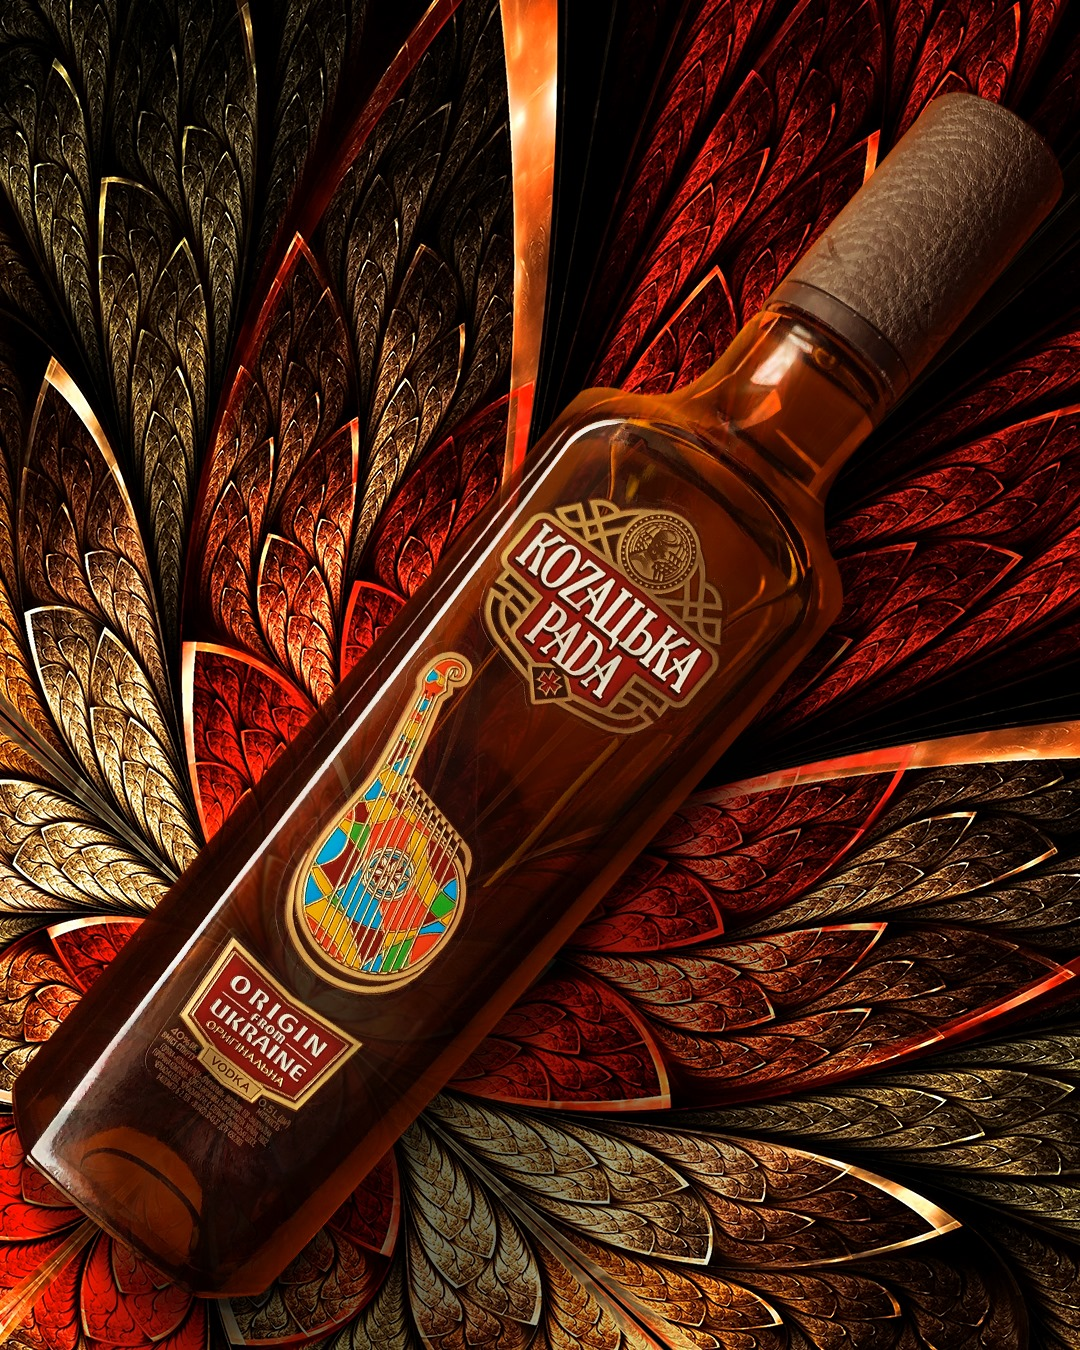 ORIGIN FROM UKRAINE! BRAND KOZATSKA RADA PRESENTED A NEW DESIGN OF VODKA ORIGINAL